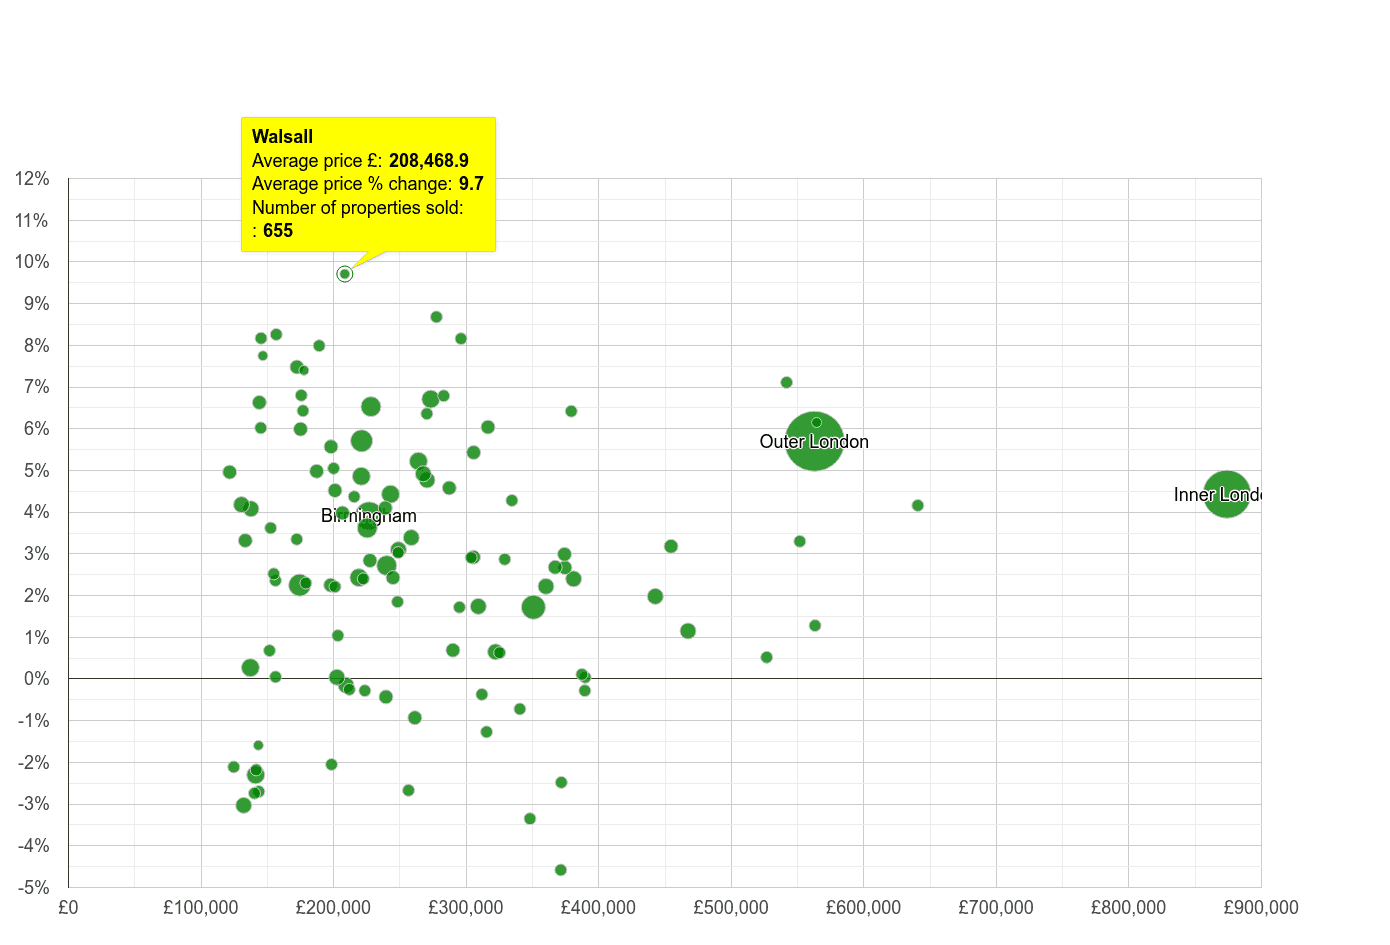 Walsall house prices compared to other cities